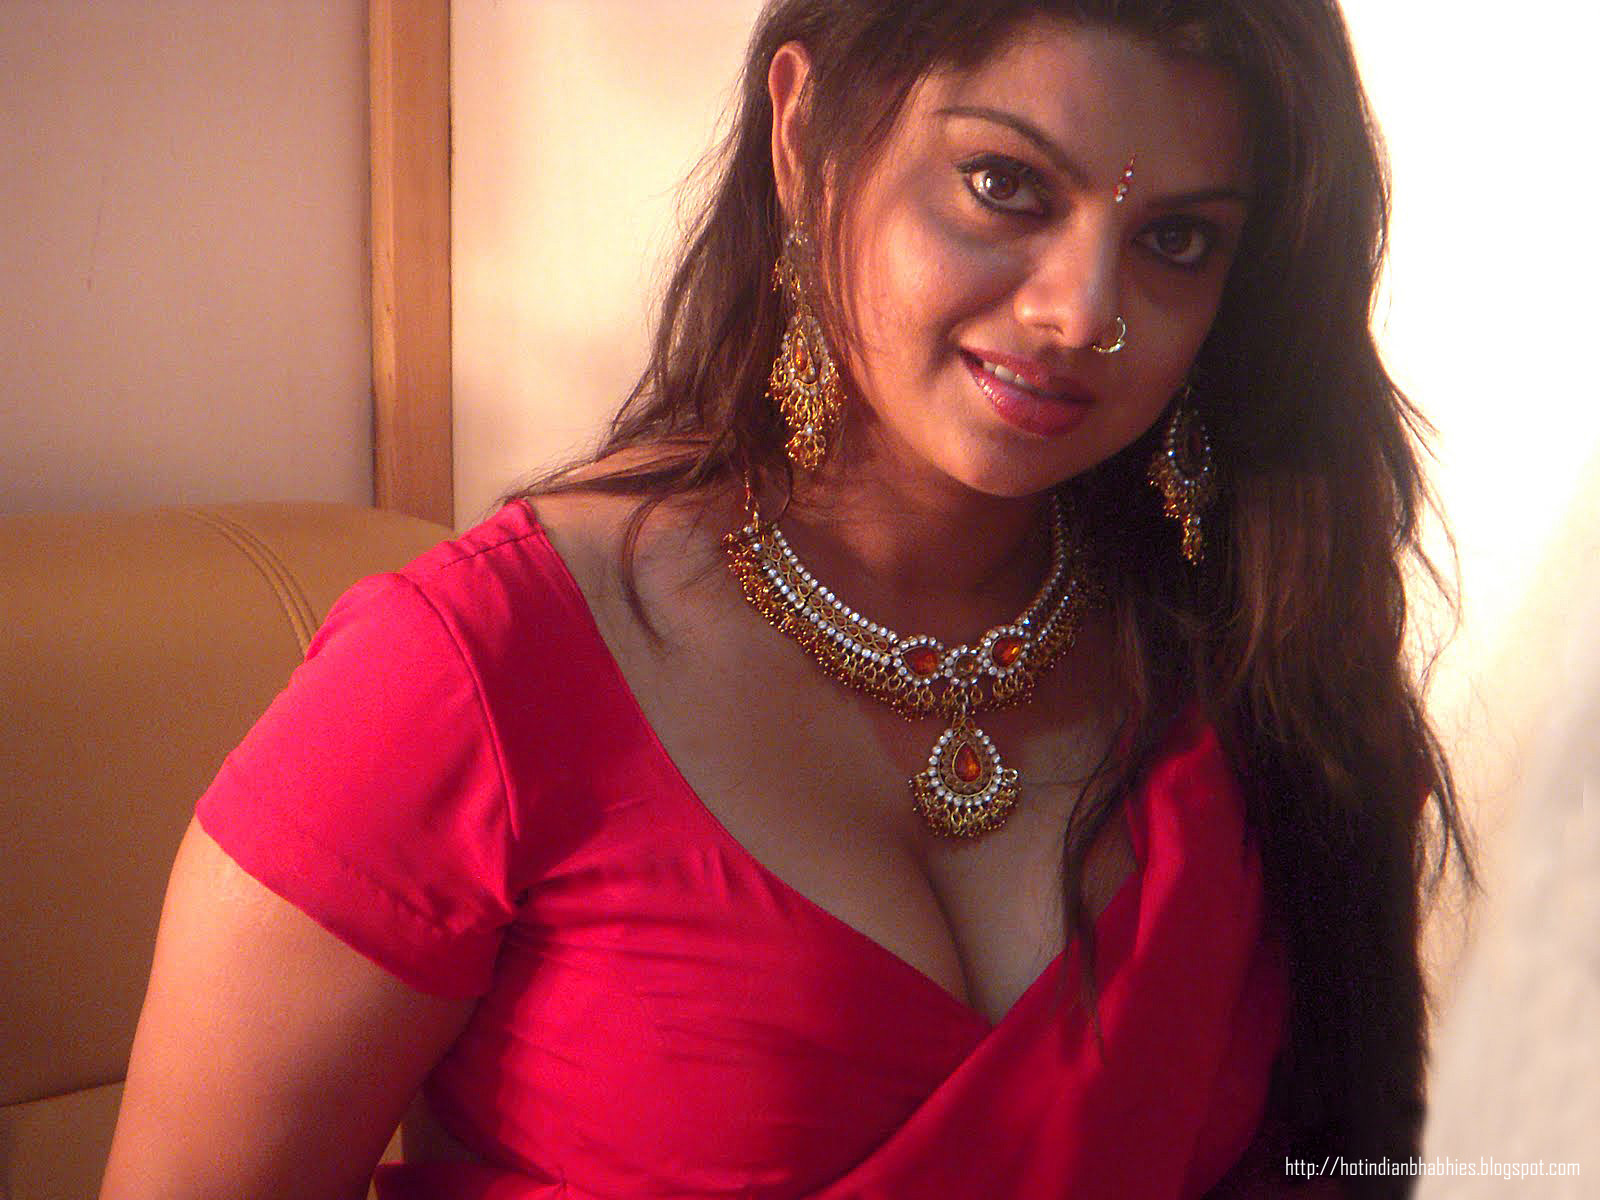 http://4.bp.blogspot.com/-73ASdnUQ2Cs/TZIzFqE93YI/AAAAAAAAH2c/idKu_fOfbzA/s1600/1-Swathi-Varma-Hot-Photo-gallery-arabic-tamil-indian-sexy-babes-house-wife-sex-pictures-bed-room-pictures-nude-pisture-sari-pictures-big-boobs-tits-pictures-indian-tamil-big-ass-hot-bikini.jpg?huge%20bbw%20boobs